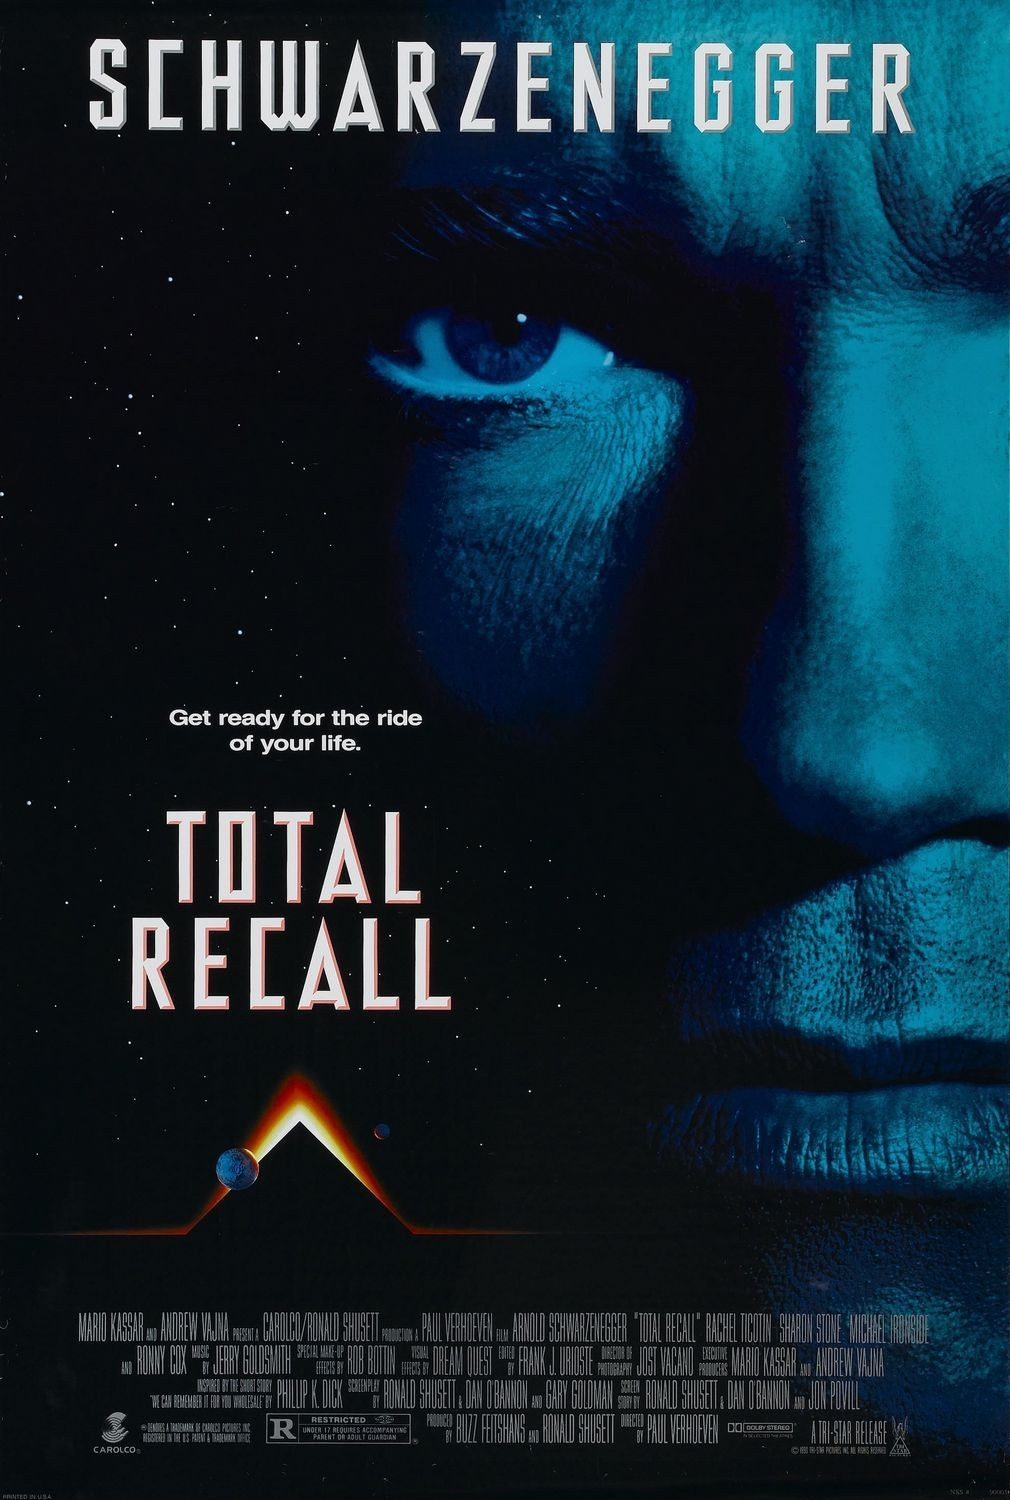 25 Things You Never Knew About 'Total Recall' (The Real One)